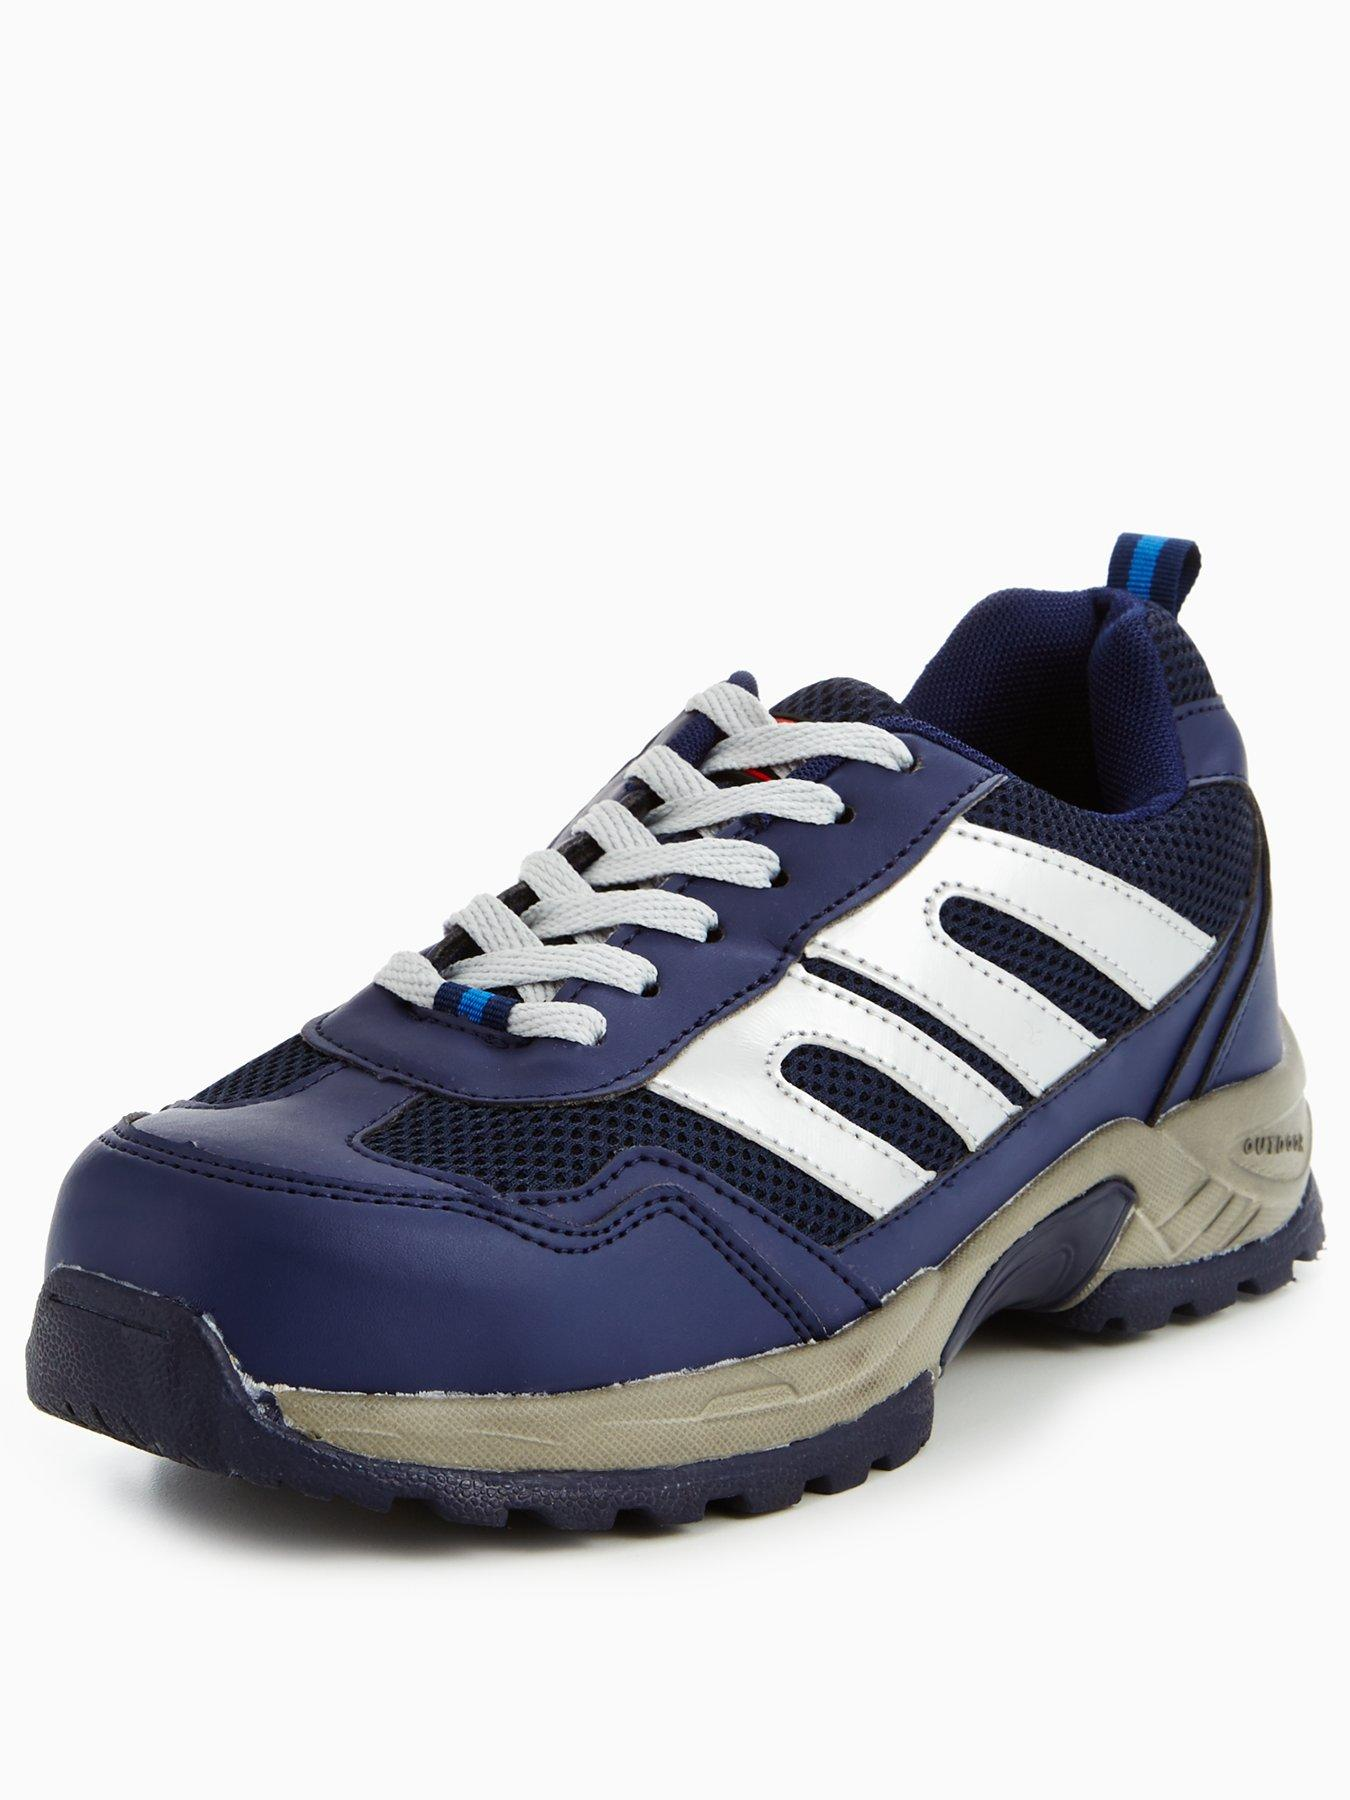 Discount Blackrock Jay Navy Trainers for Men On Sale